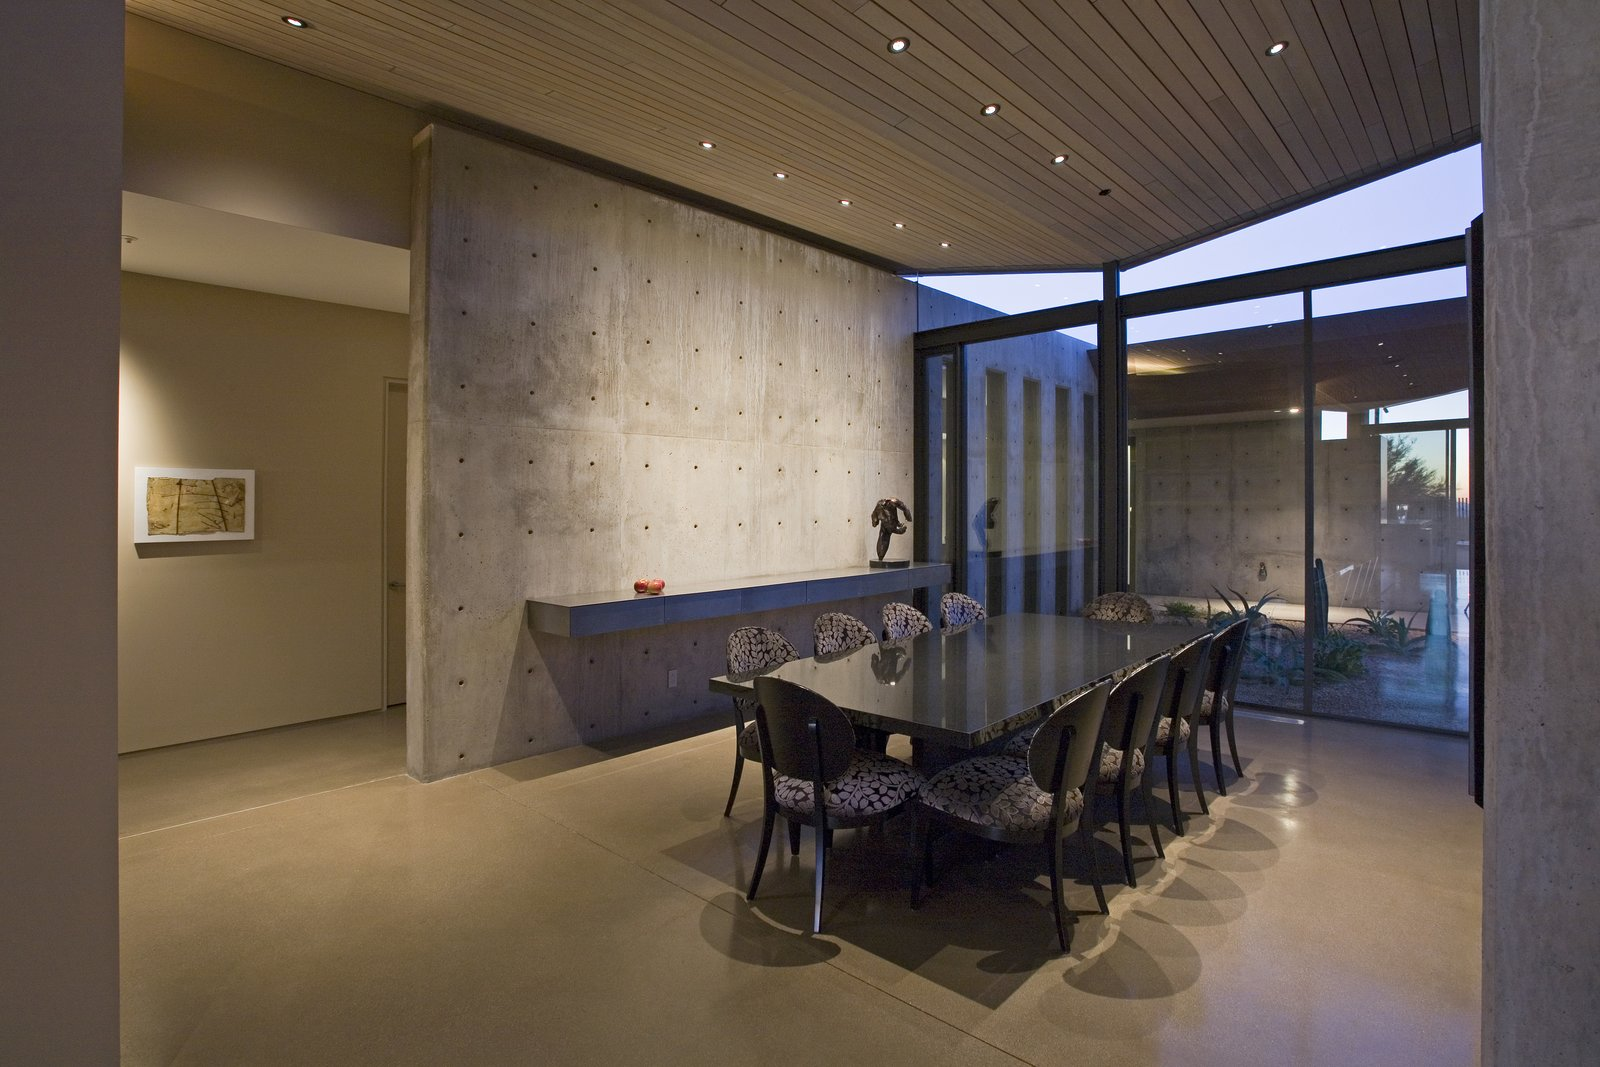 Dining Room, Chair, Table, Concrete Floor, Shelves, Recessed Lighting, and Storage  Best Photos from Desert Wing